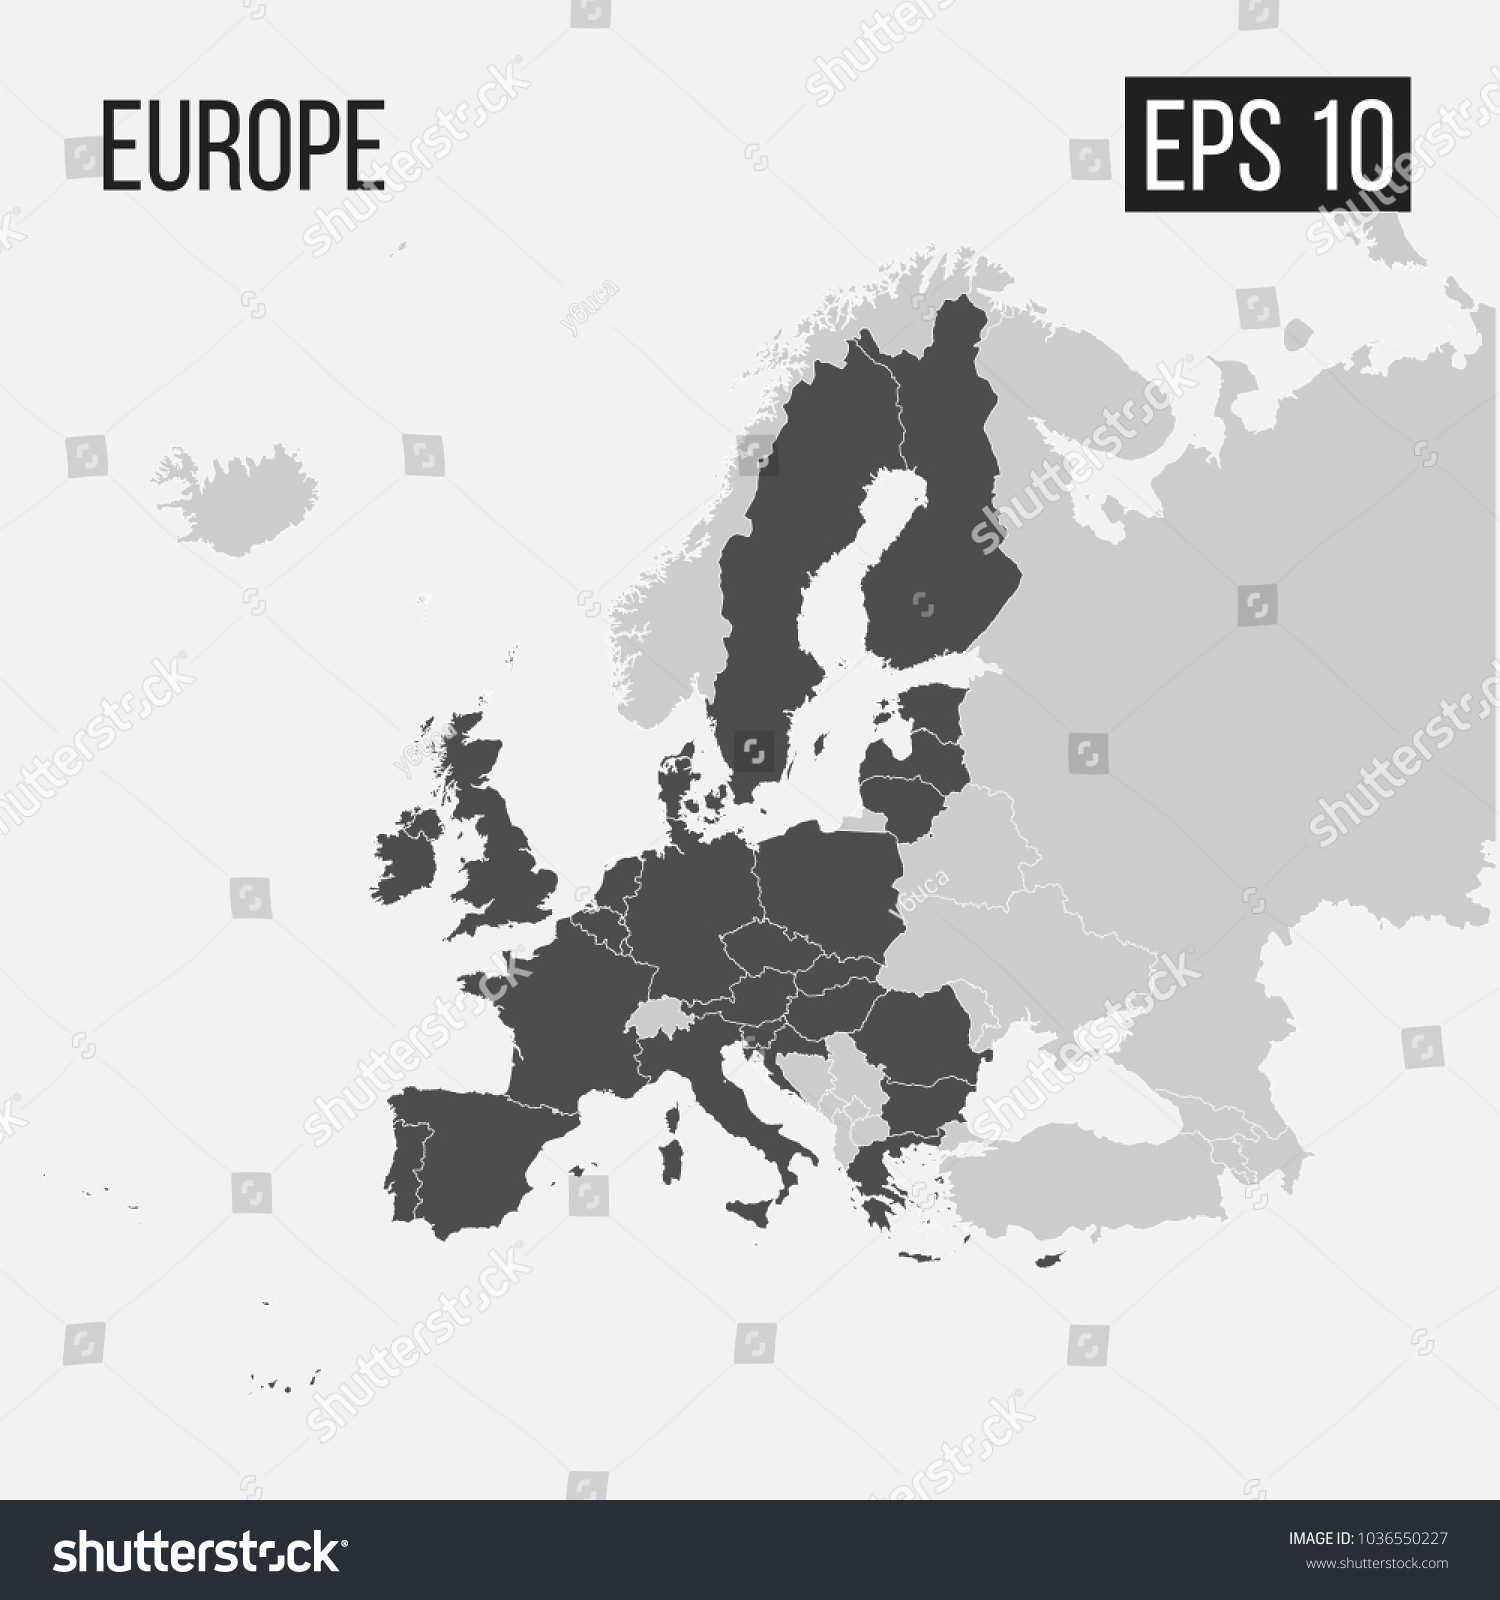 Map Europe Regions Eps 10 Stock Vector Royalty Free 1036550227